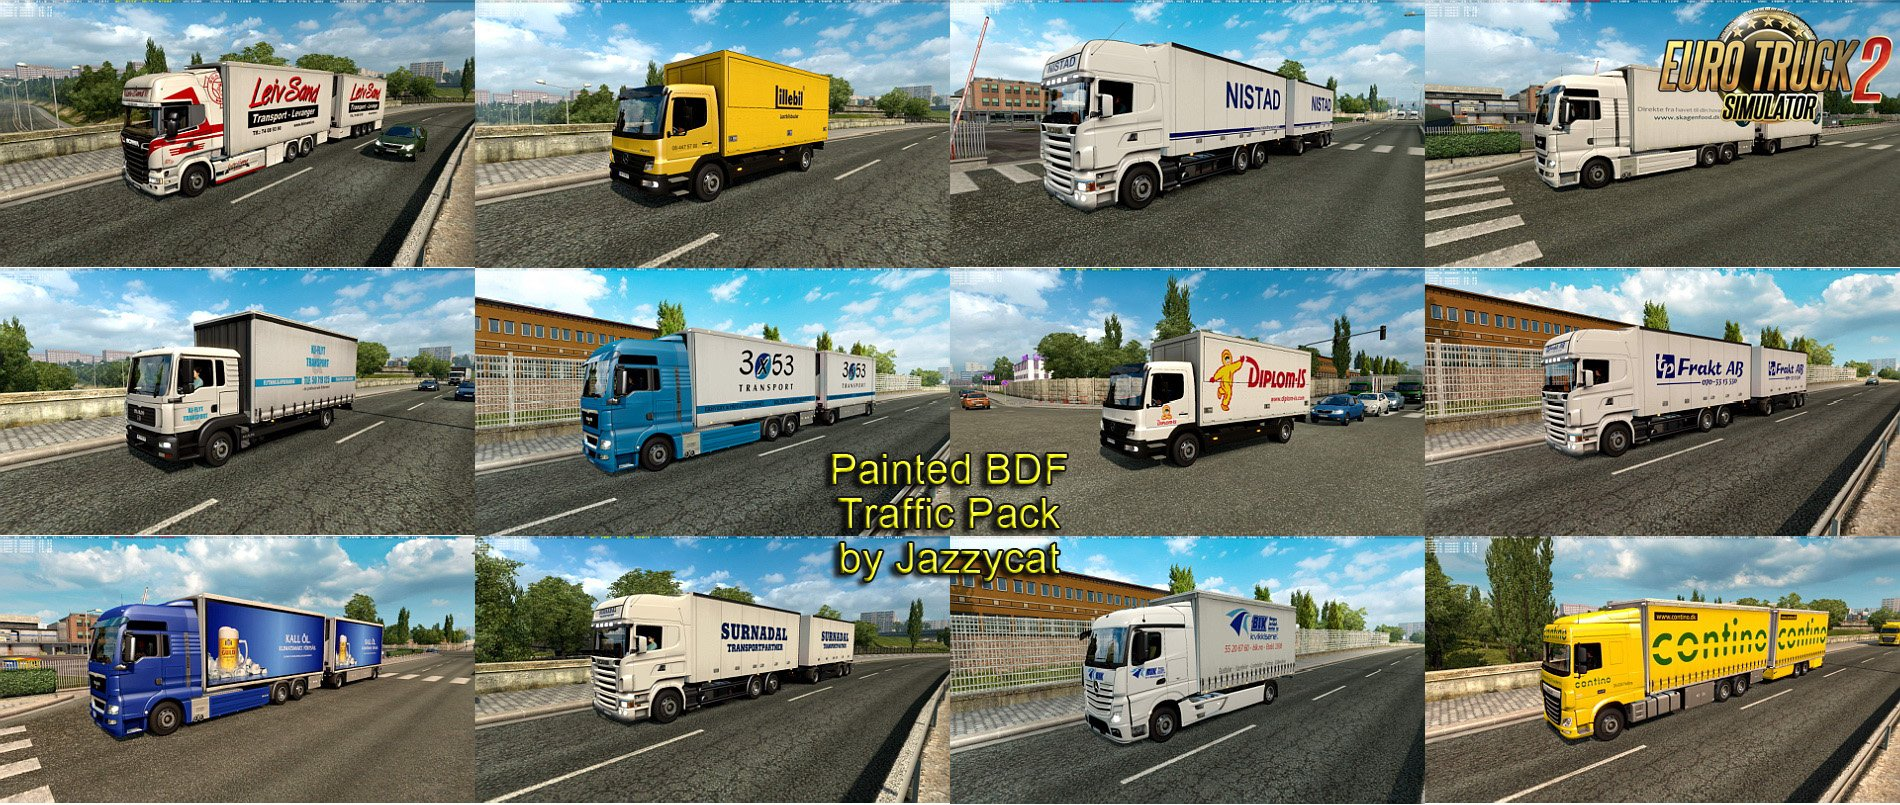 Painted BDF Traffic Pack v2.0 by Jazzycat